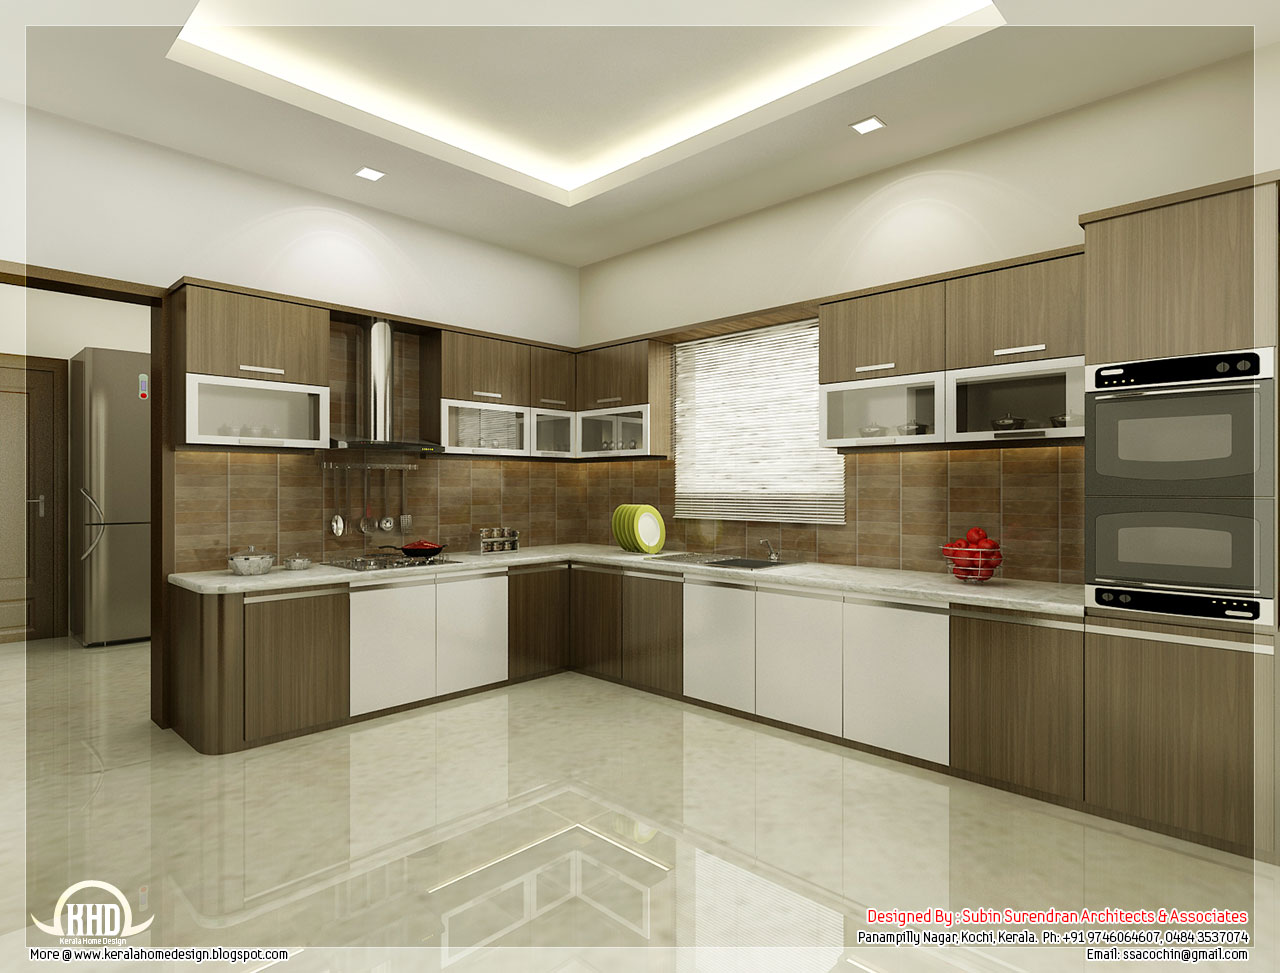 Dining and kitchen interior designs by Subin Surendran Architects